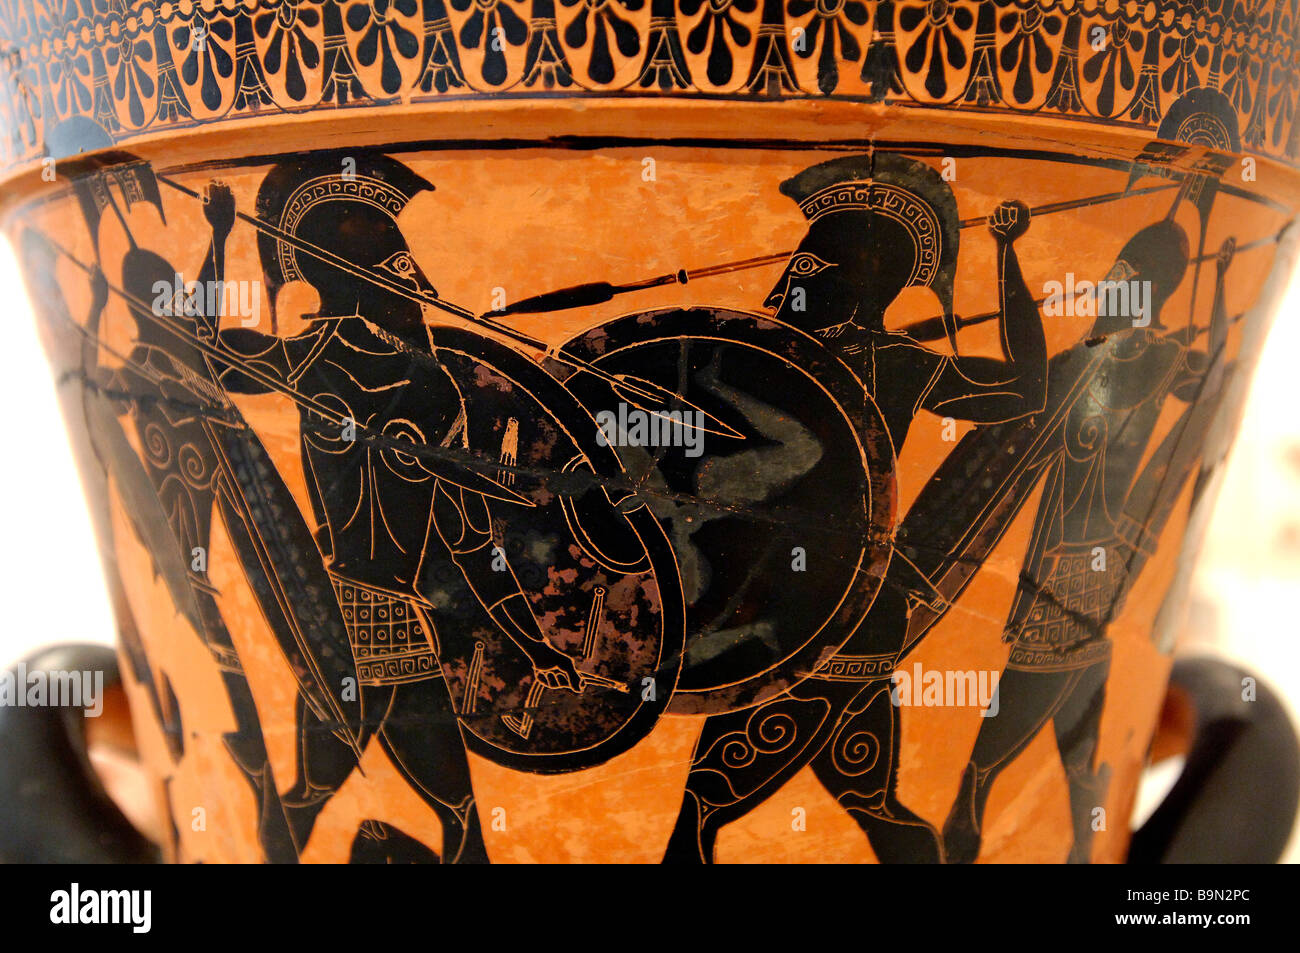 Greece, Attica, Athens, National Archaeological Museum, detail of a krater, vase, 530 BC, Homeric battle - Stock Image